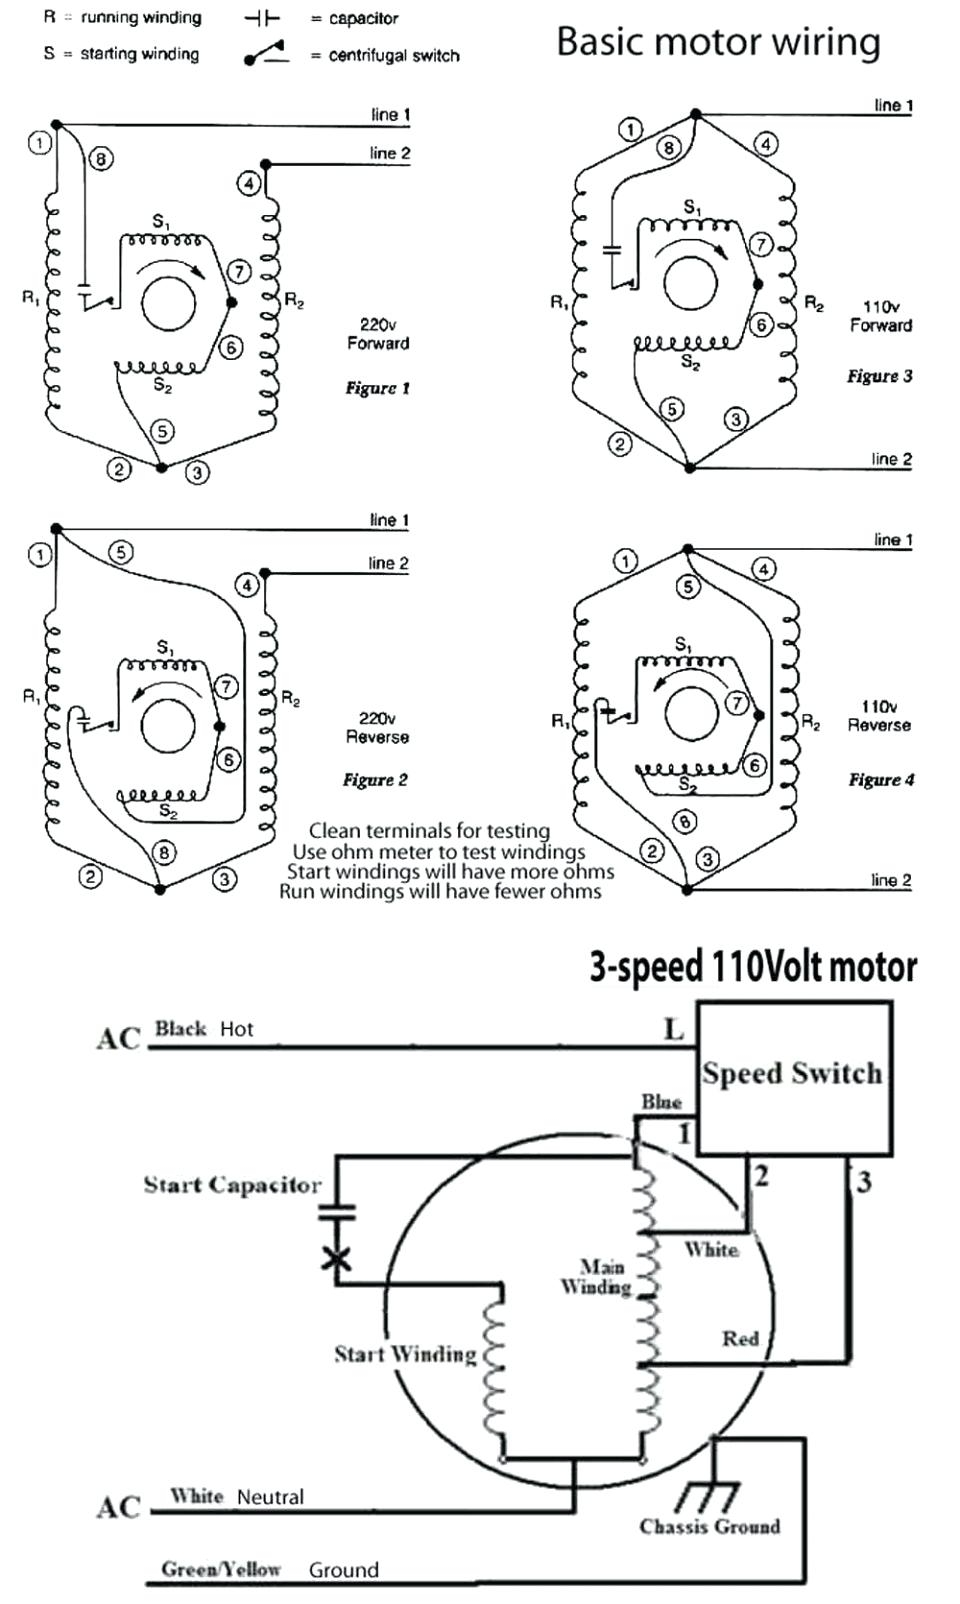 hayward super pump wiring diagram 115v Collection-Hayward Super Pump Wiring Diagram 115v Beautiful Pretty Waterway Pump Wiring Diagram Electrical Circuit 16-r